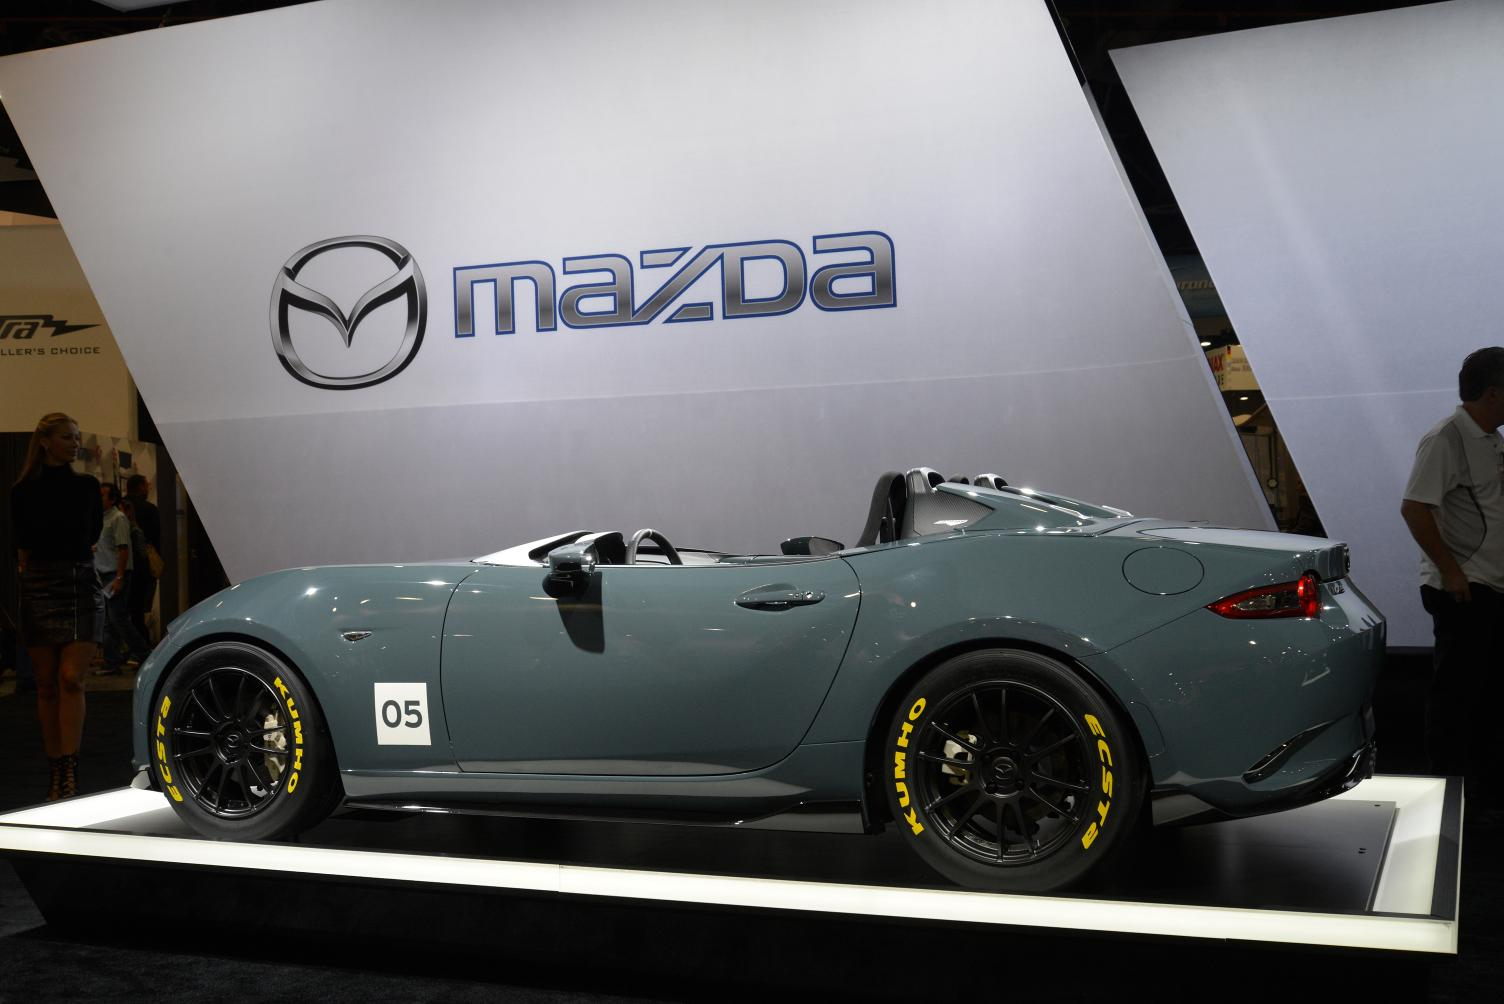 https://s1.cdn.autoevolution.com/images/news/gallery/2016-mazda-mx-5-speedster-and-spyder-concepts-stun-sema-live-photos_1.jpg